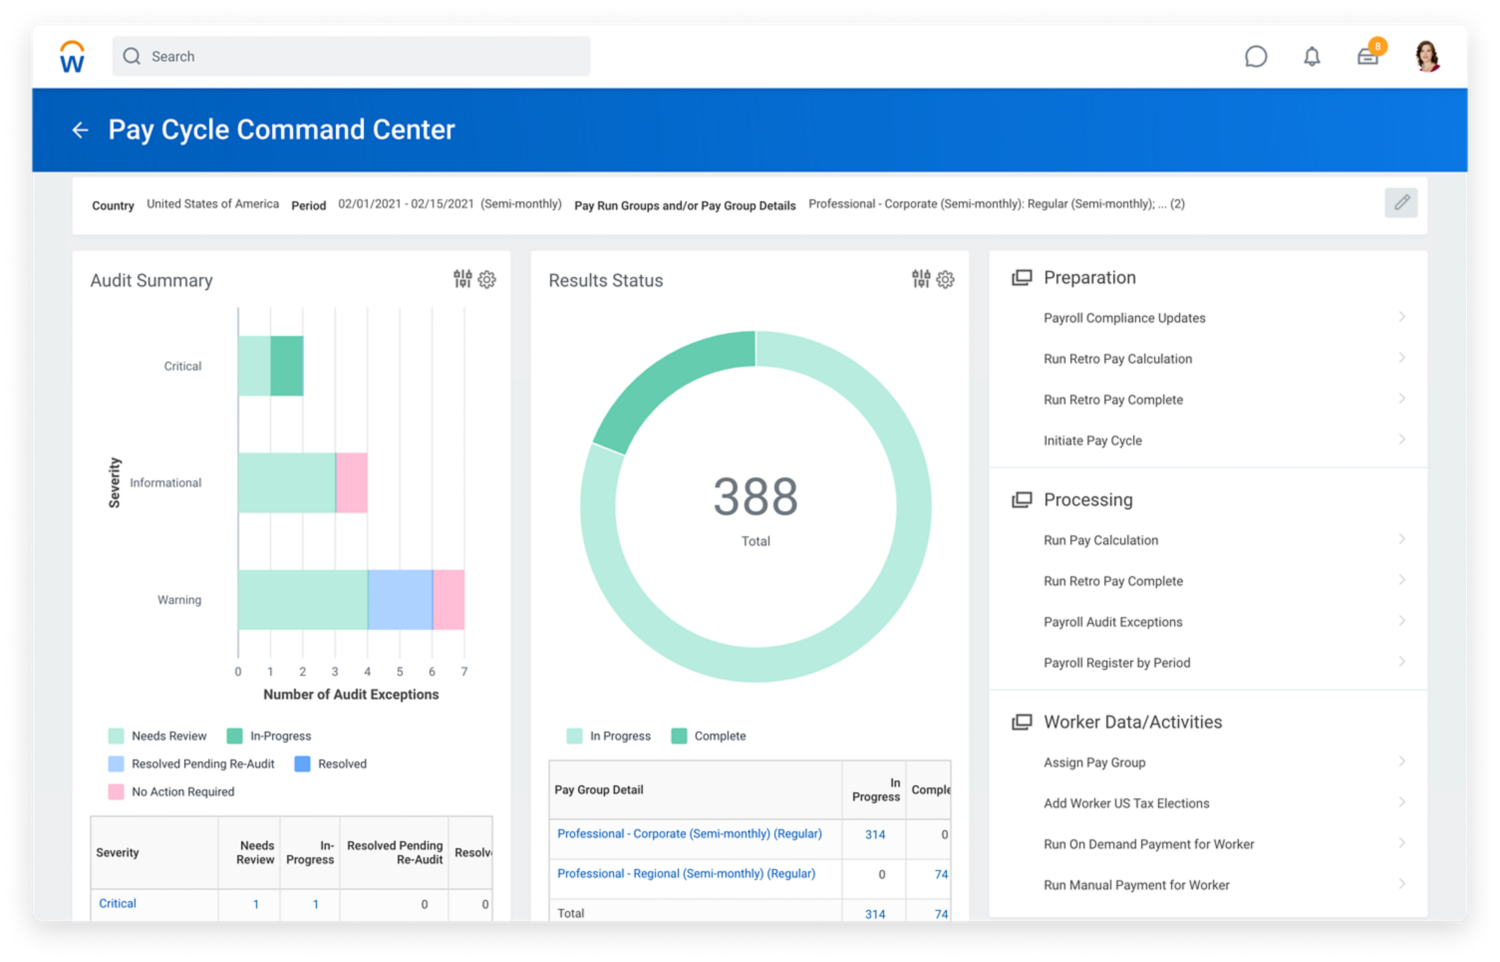 Pay cycle command center dashboard with graphs for audit summary, results status, and accounting summary